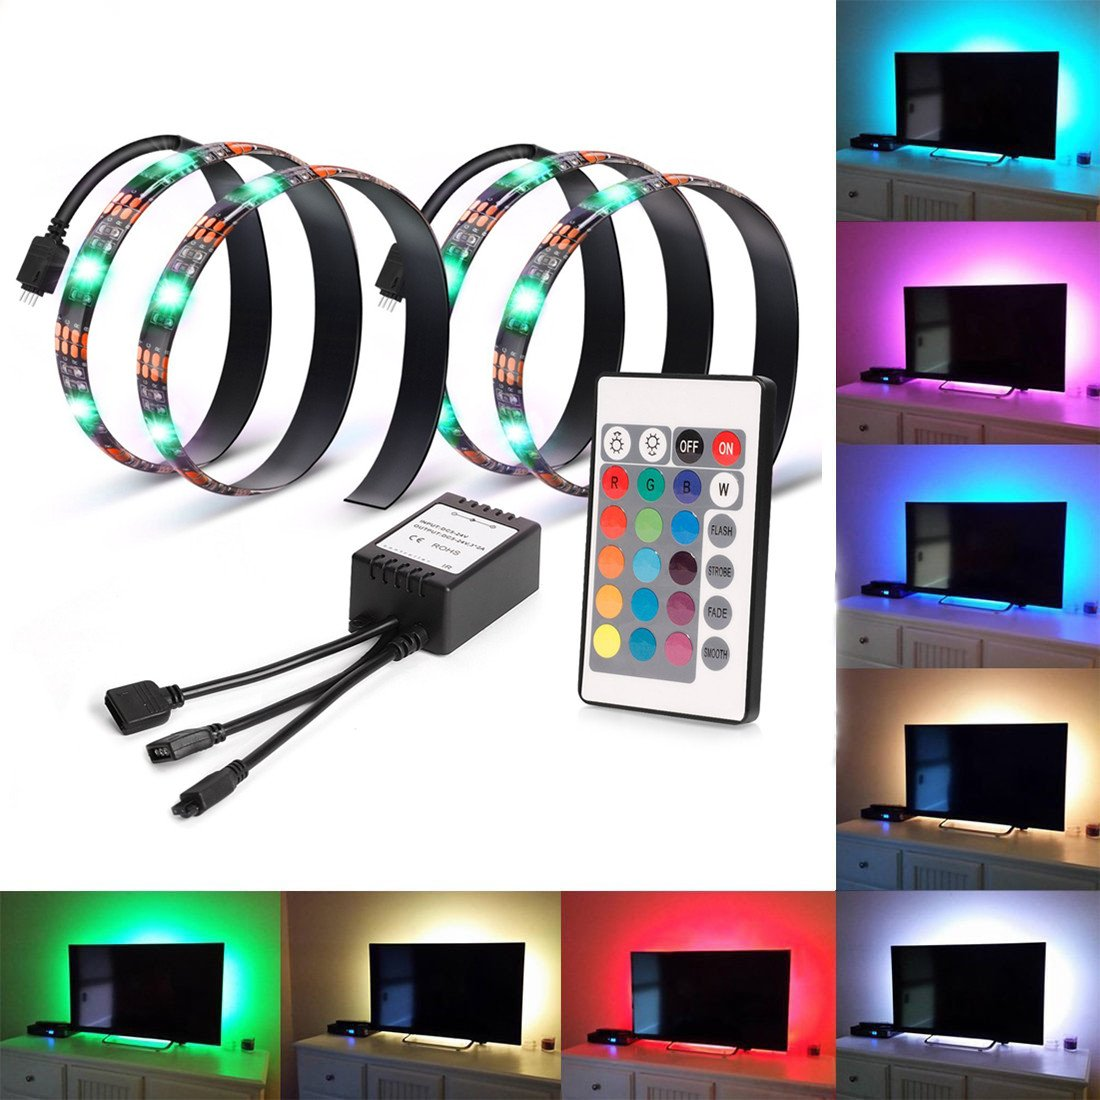 Smartdio Bias Lighting for HDTV - 2 USB LED Backlight Bright RGB Multi Color Strip With Remote Control for Flat Screen TV LCD, Desktop Monitors (Reduce eye fatigue and increase image clarity)